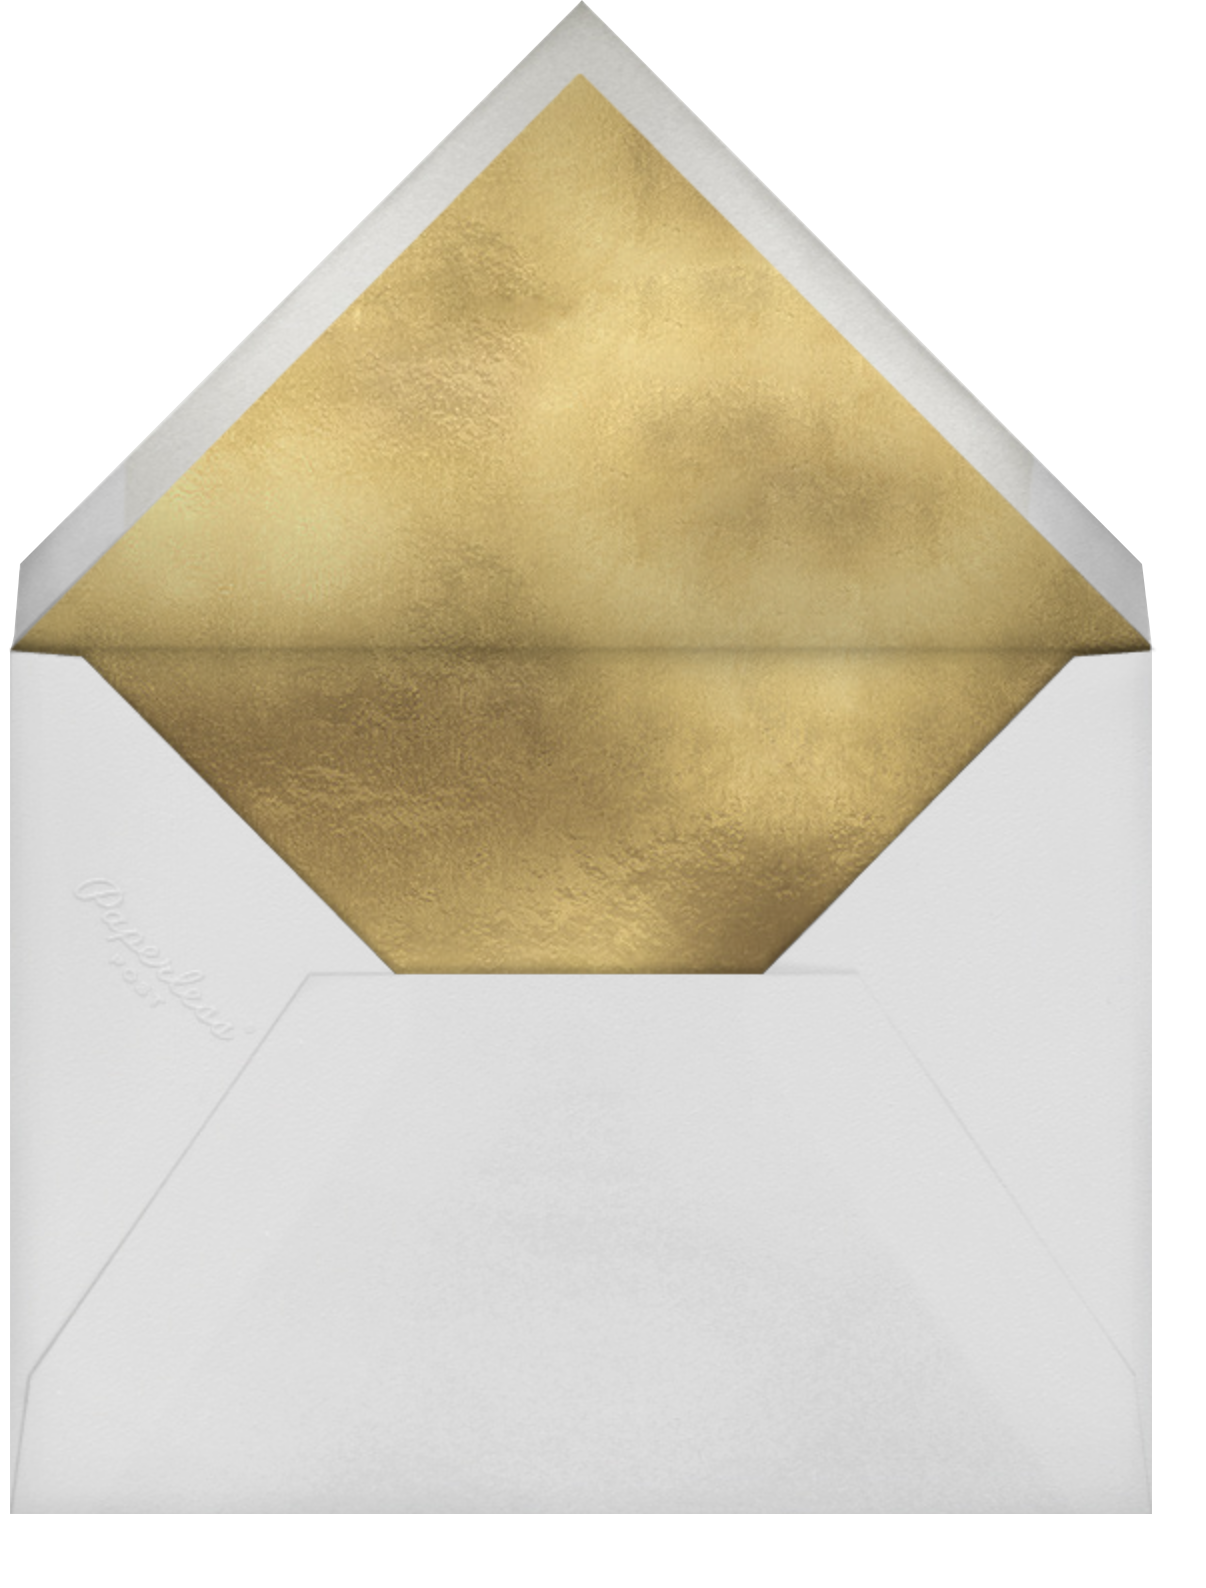 Marion Thank You - Rifle Paper Co. - Envelope